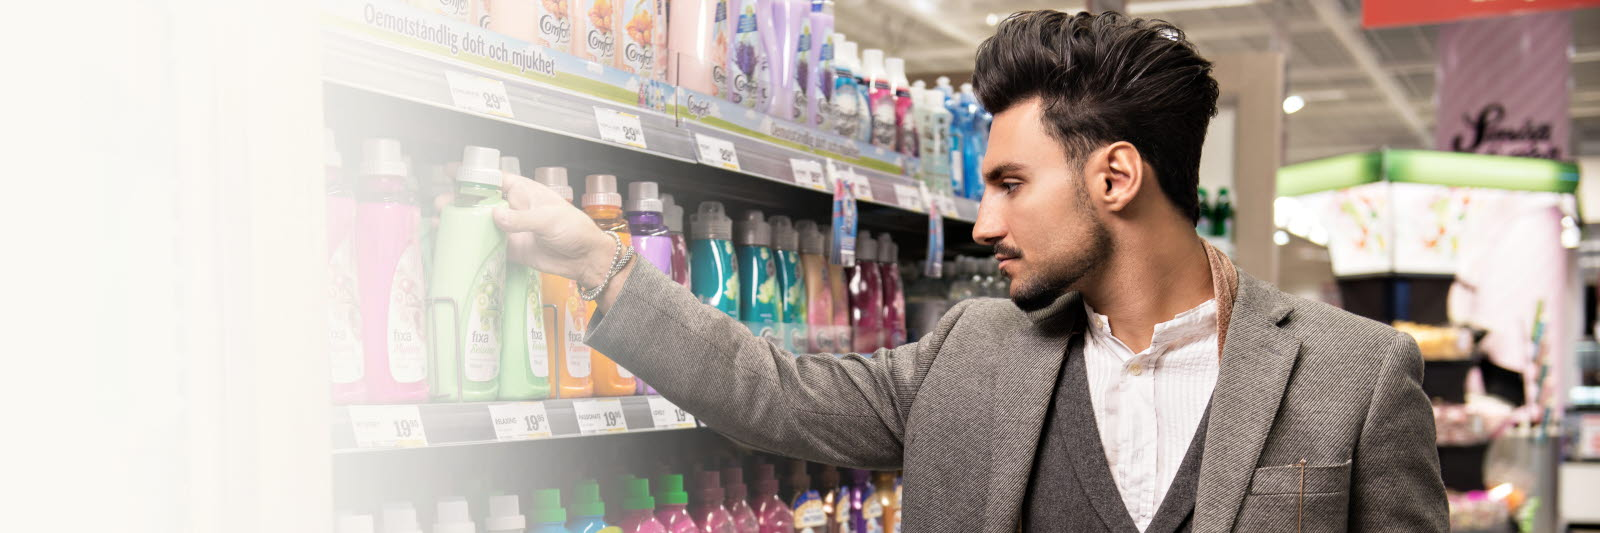 Man reaching for a product on a shelf